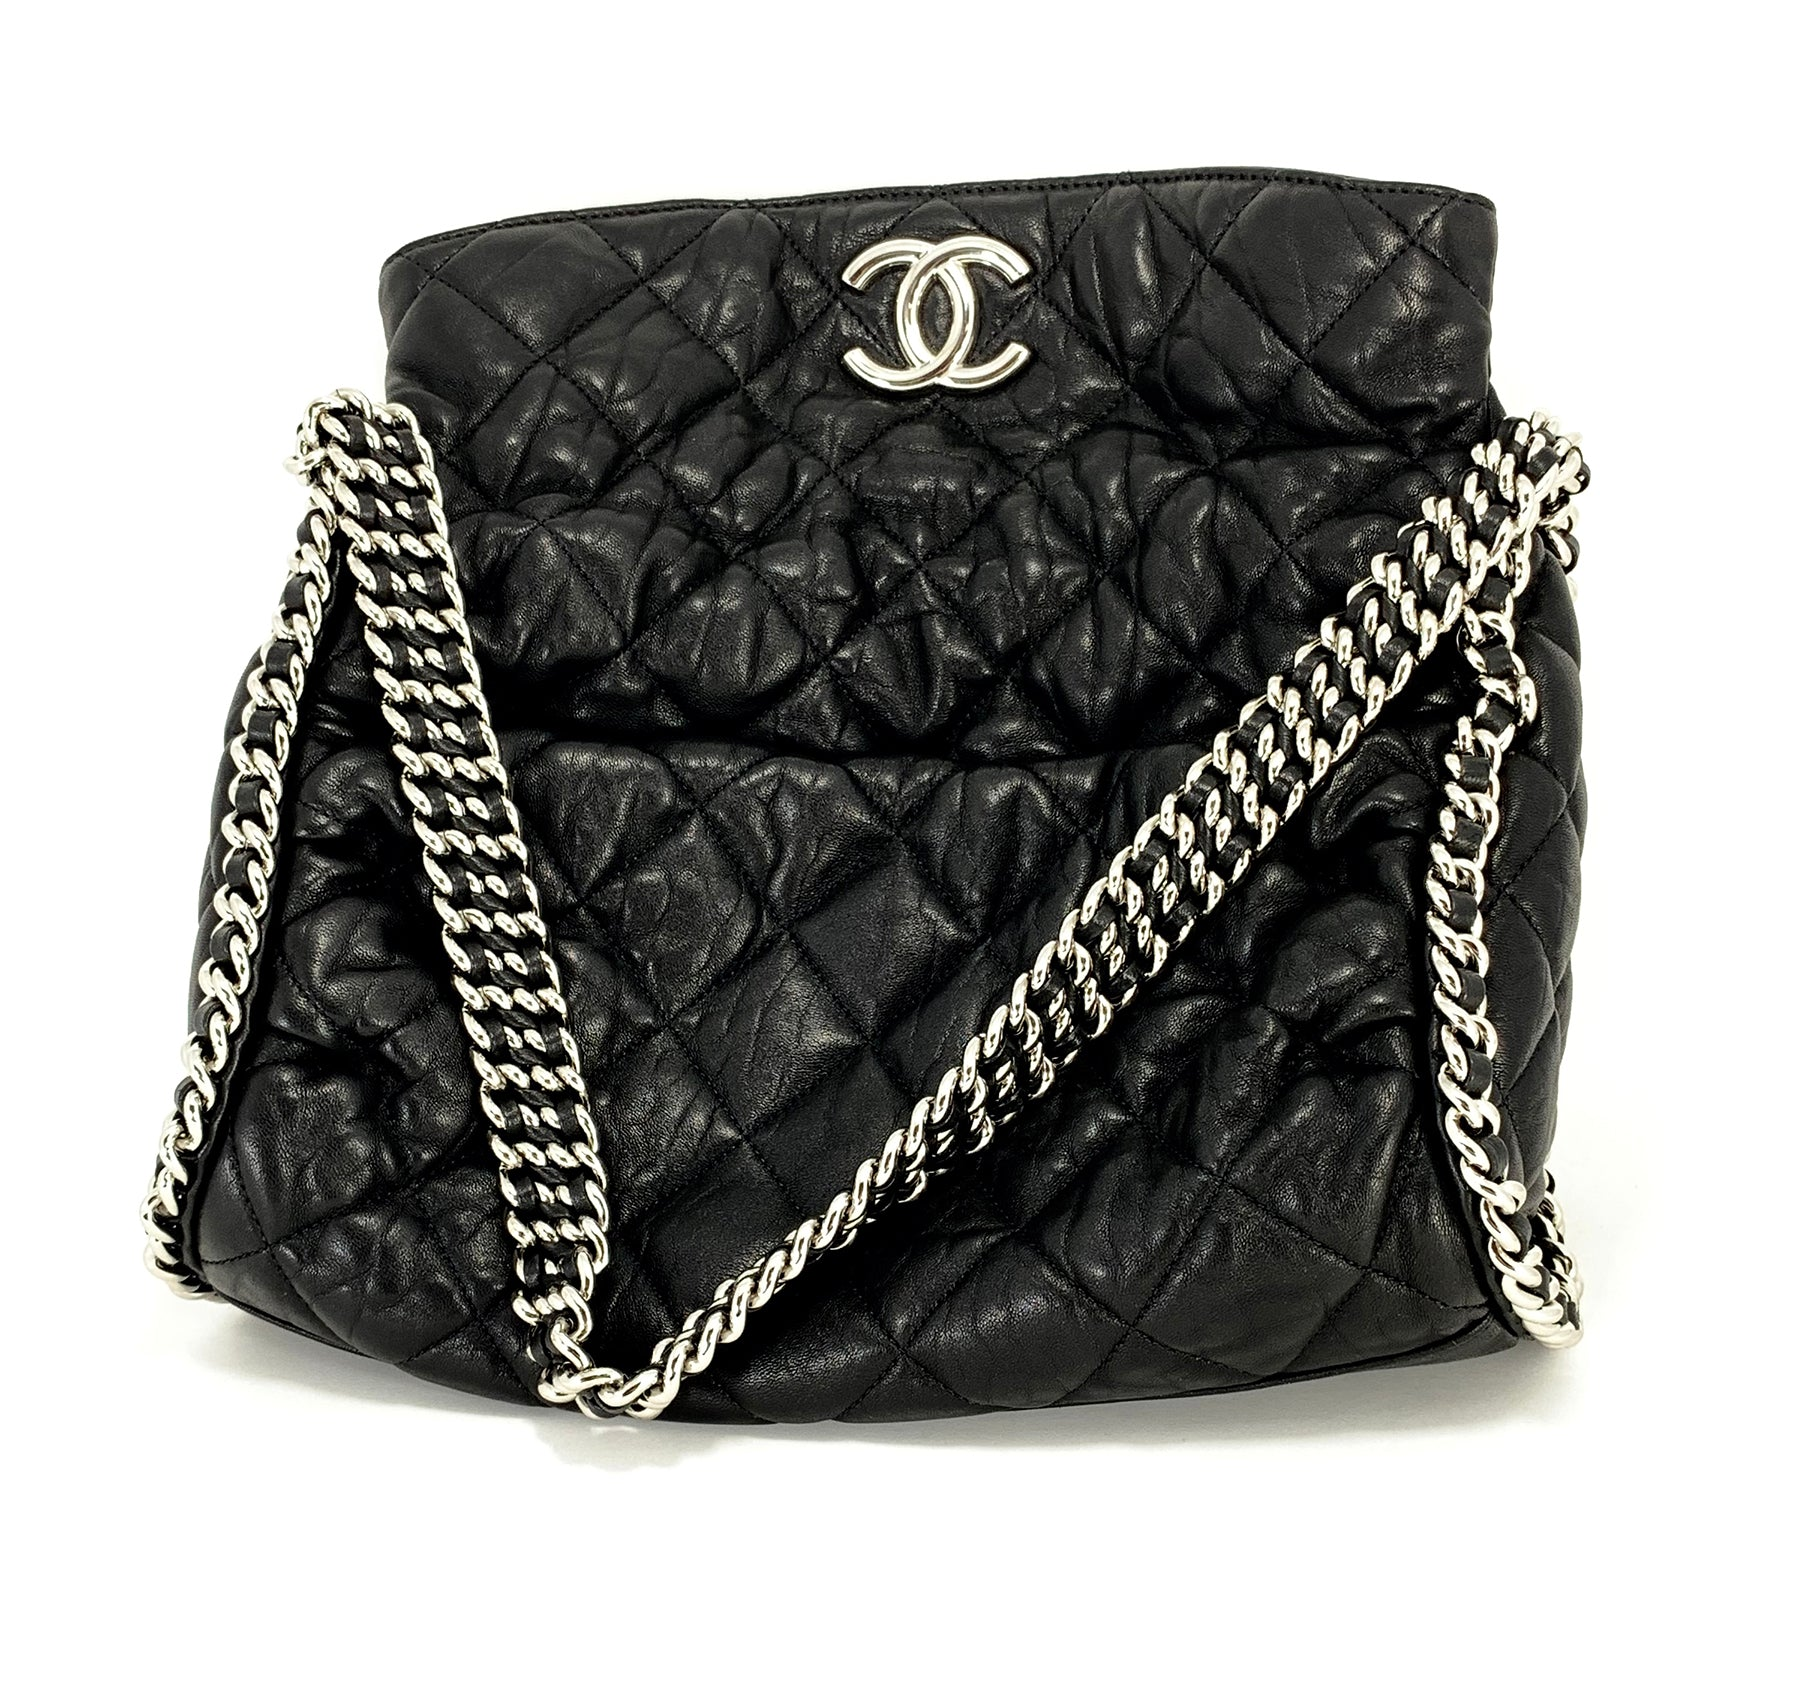 571e0ffb361062 ... Load image into Gallery viewer, CHANEL Black Hobo Quilted Ultimate Soft  Chain Around Tote Bag